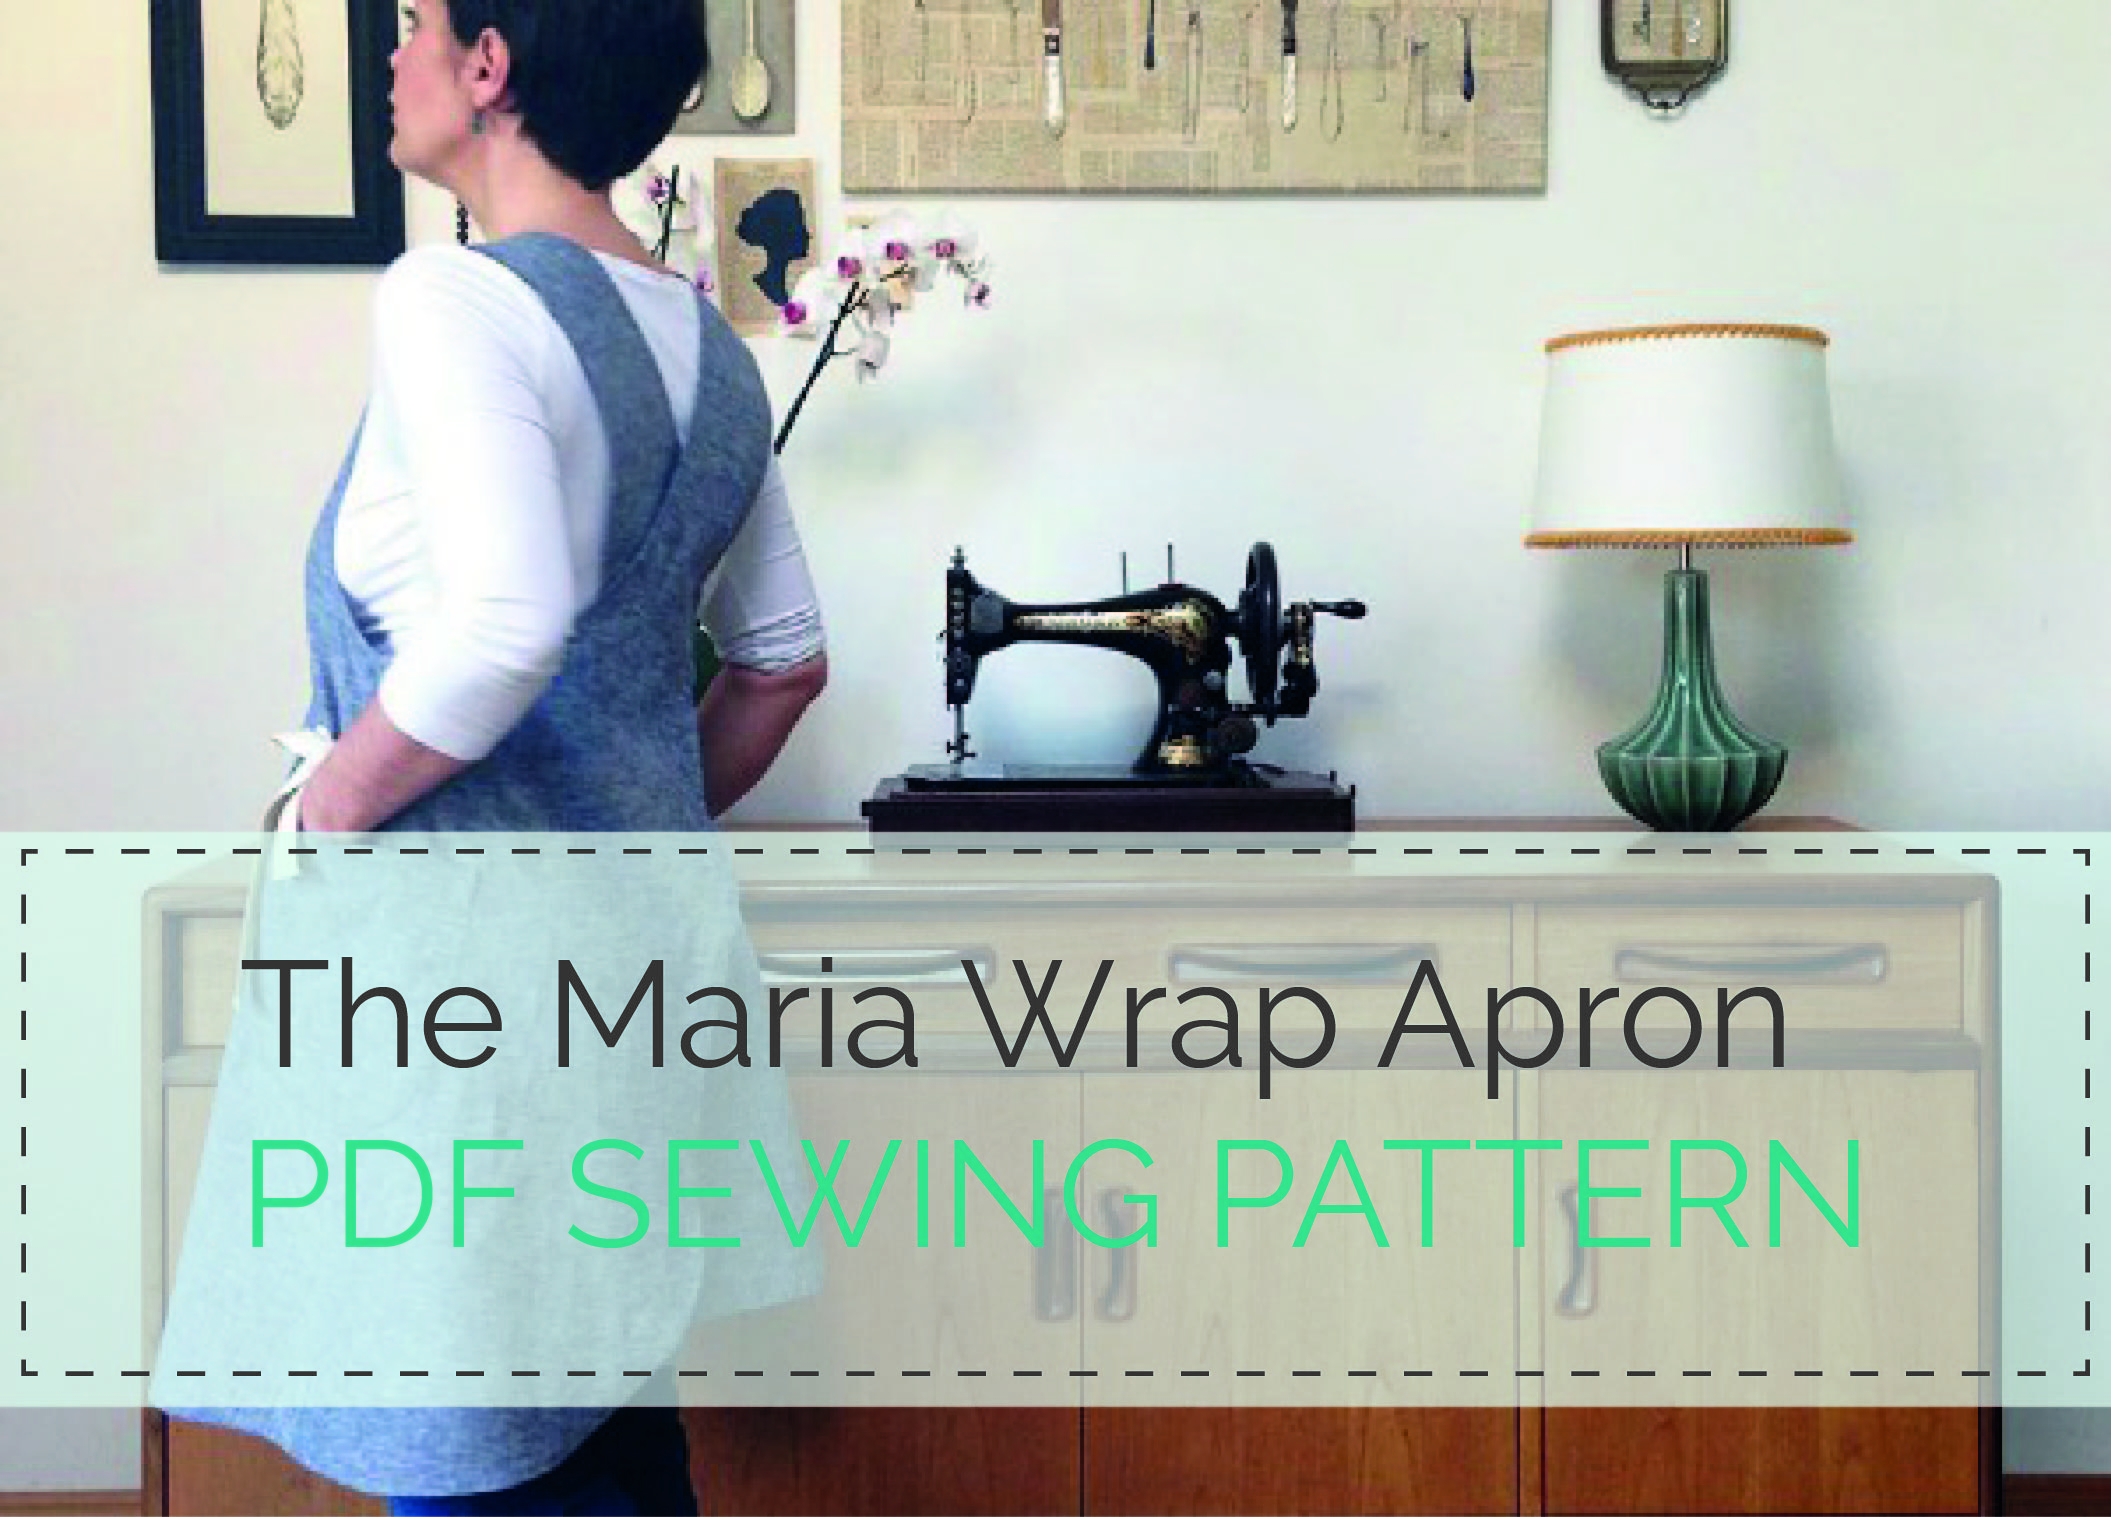 The Maria Wrap Apron - PDF Sewing Pattern